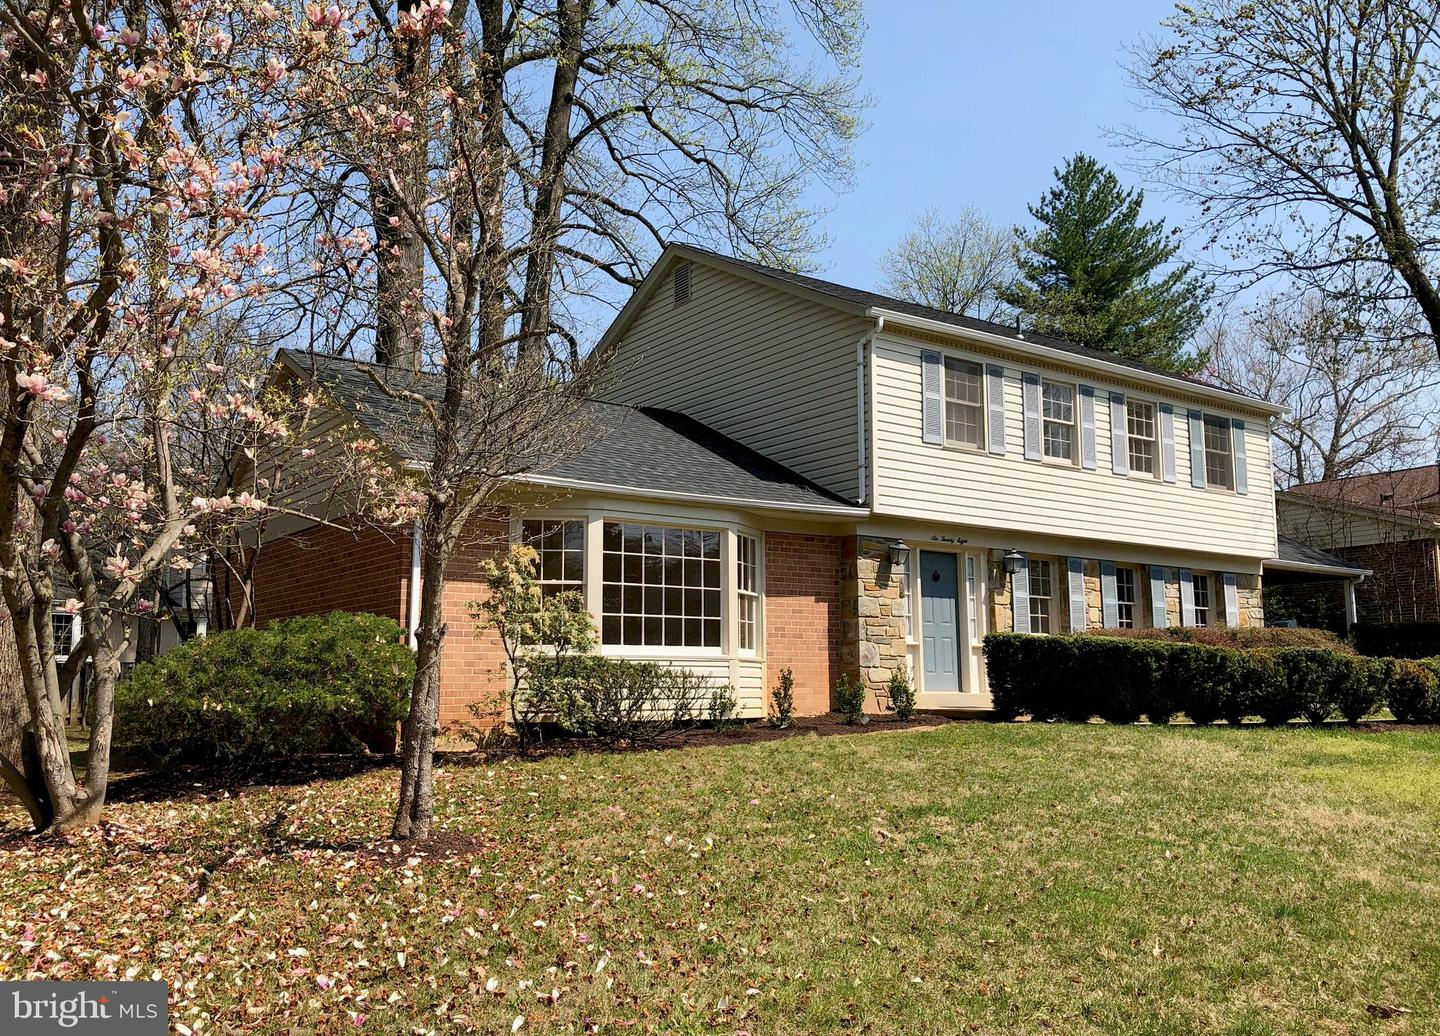 628 SMALLWOOD RD, ROCKVILLE, Maryland 20850, 5 Bedrooms Bedrooms, ,3 BathroomsBathrooms,Single Family,For Sale,628 SMALLWOOD RD,MDMC755838